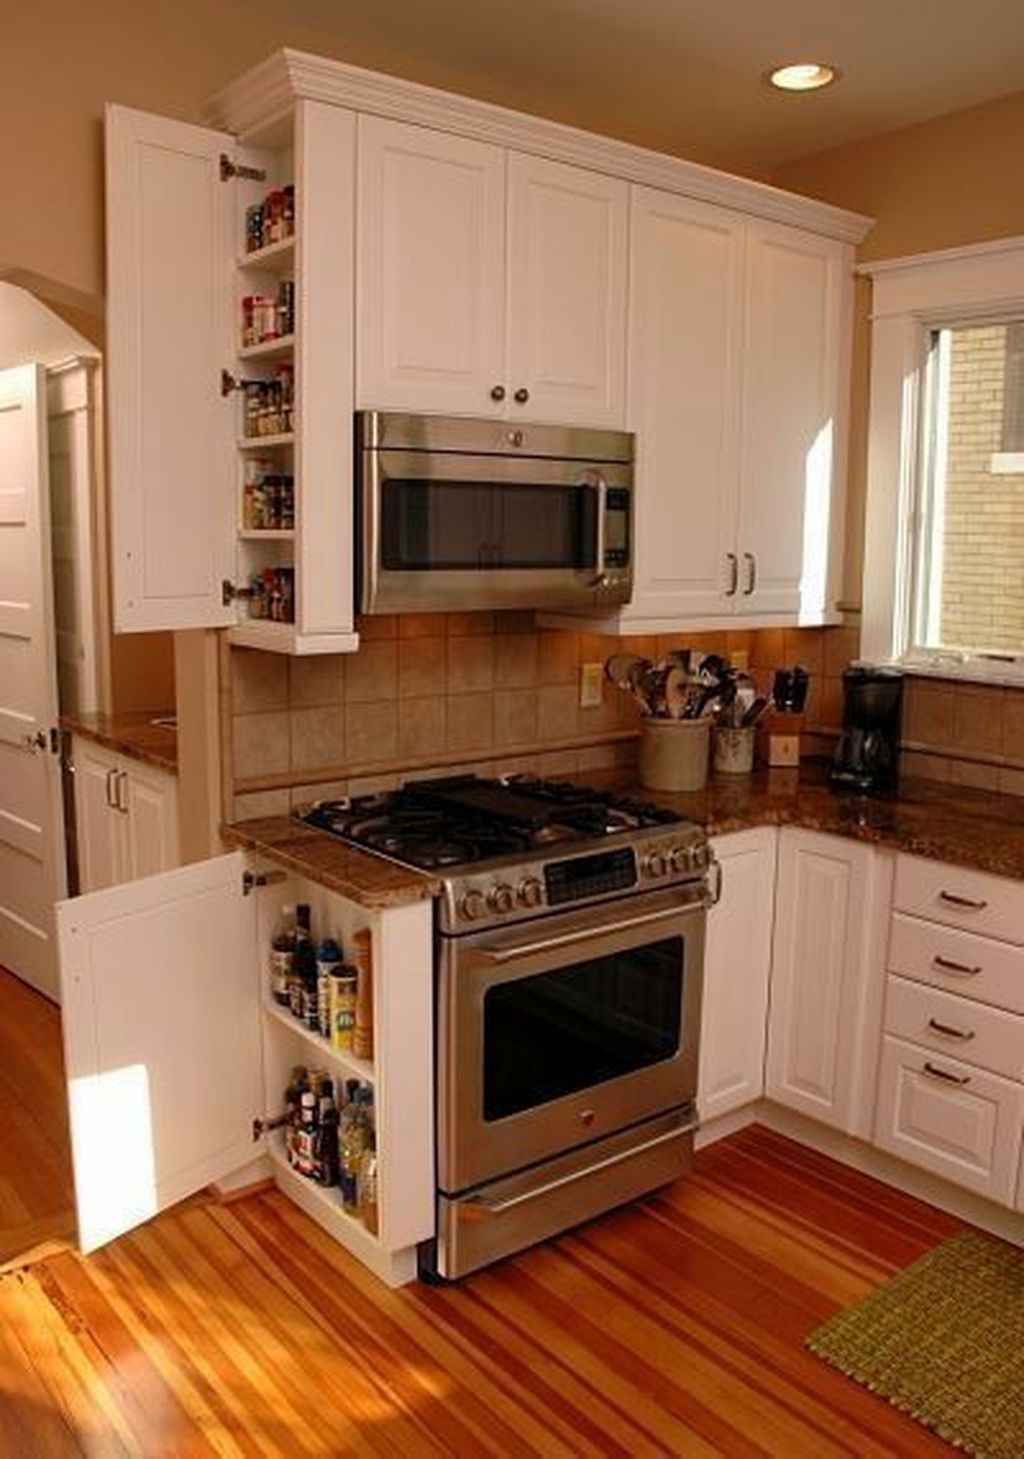 30 Inspiring Small Kitchen Remodel Design Ideas That Will Inspire You Gagohome